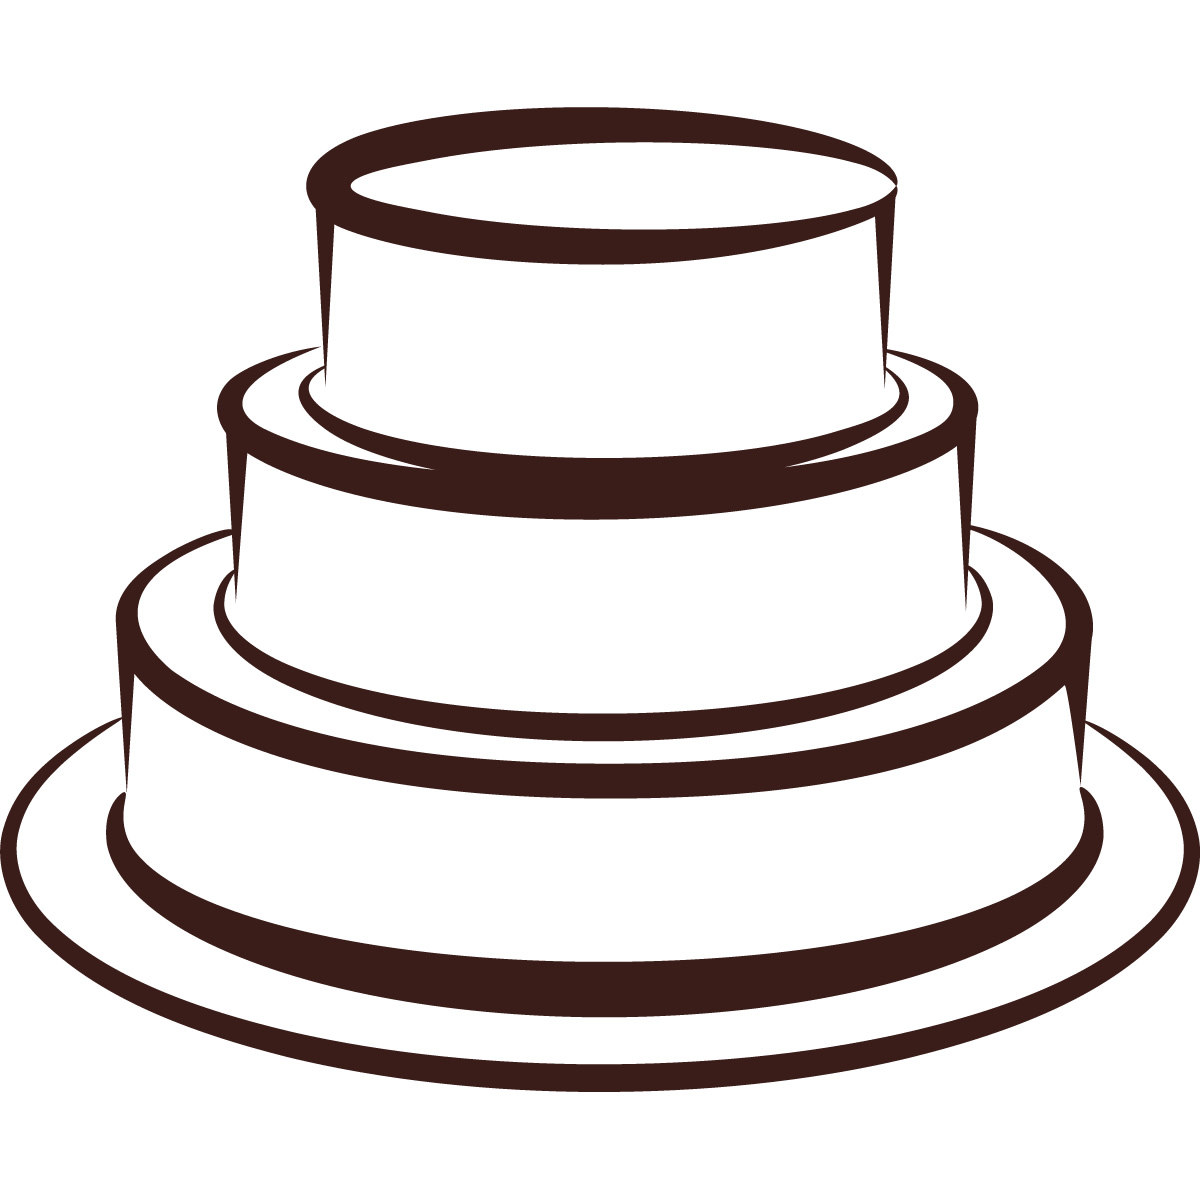 4 tiered cake clipart graphic library Free Tiering Cliparts, Download Free Clip Art, Free Clip Art on ... graphic library